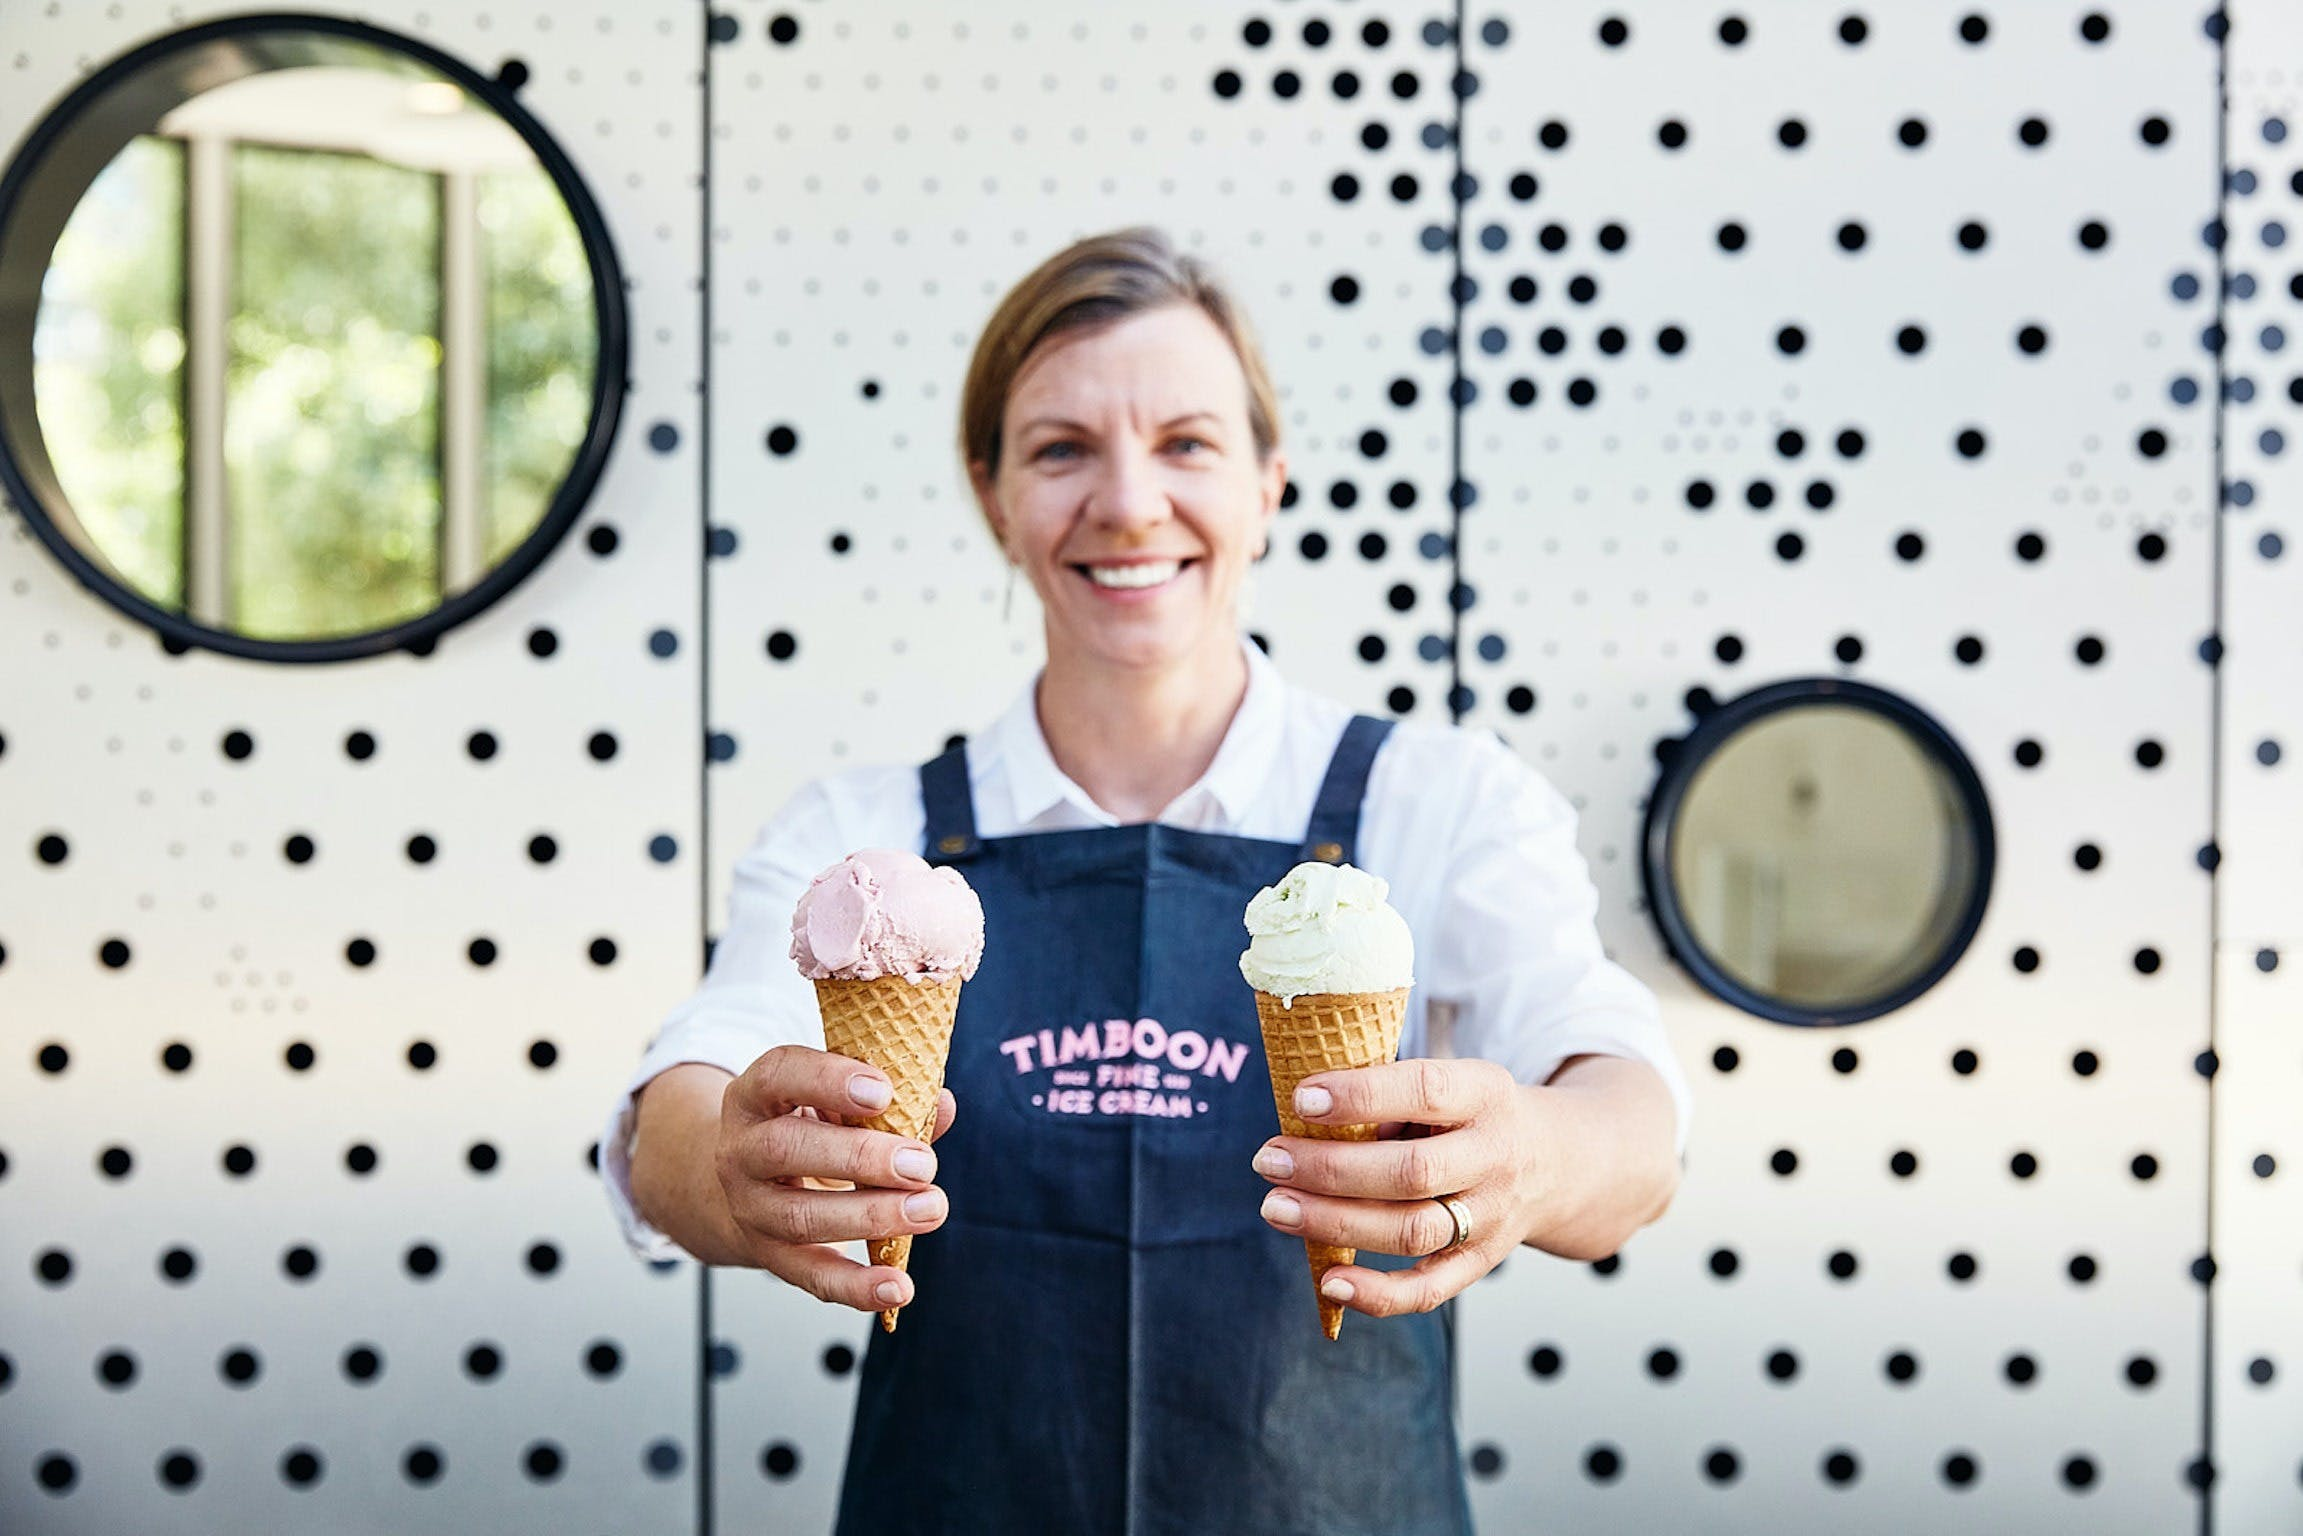 The Timboon Ice Creamery - Victoria Tourism